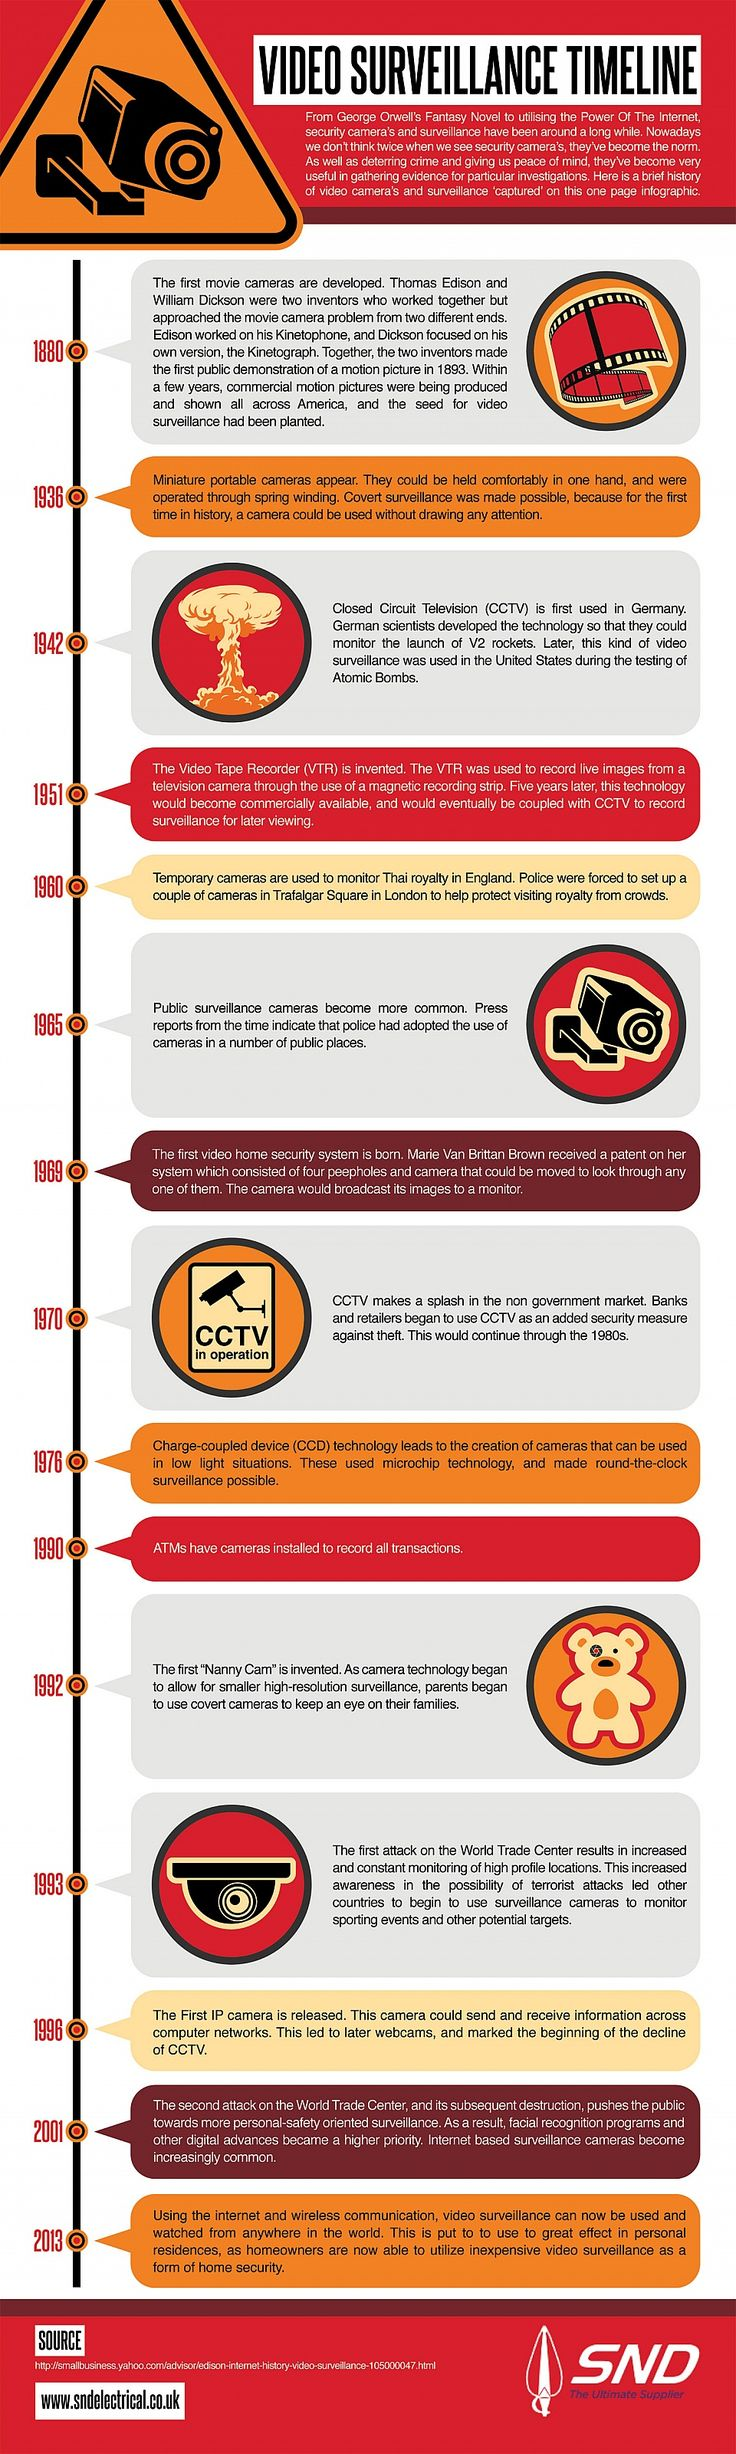 Video Surveillance #infographic Timeline  #cctv